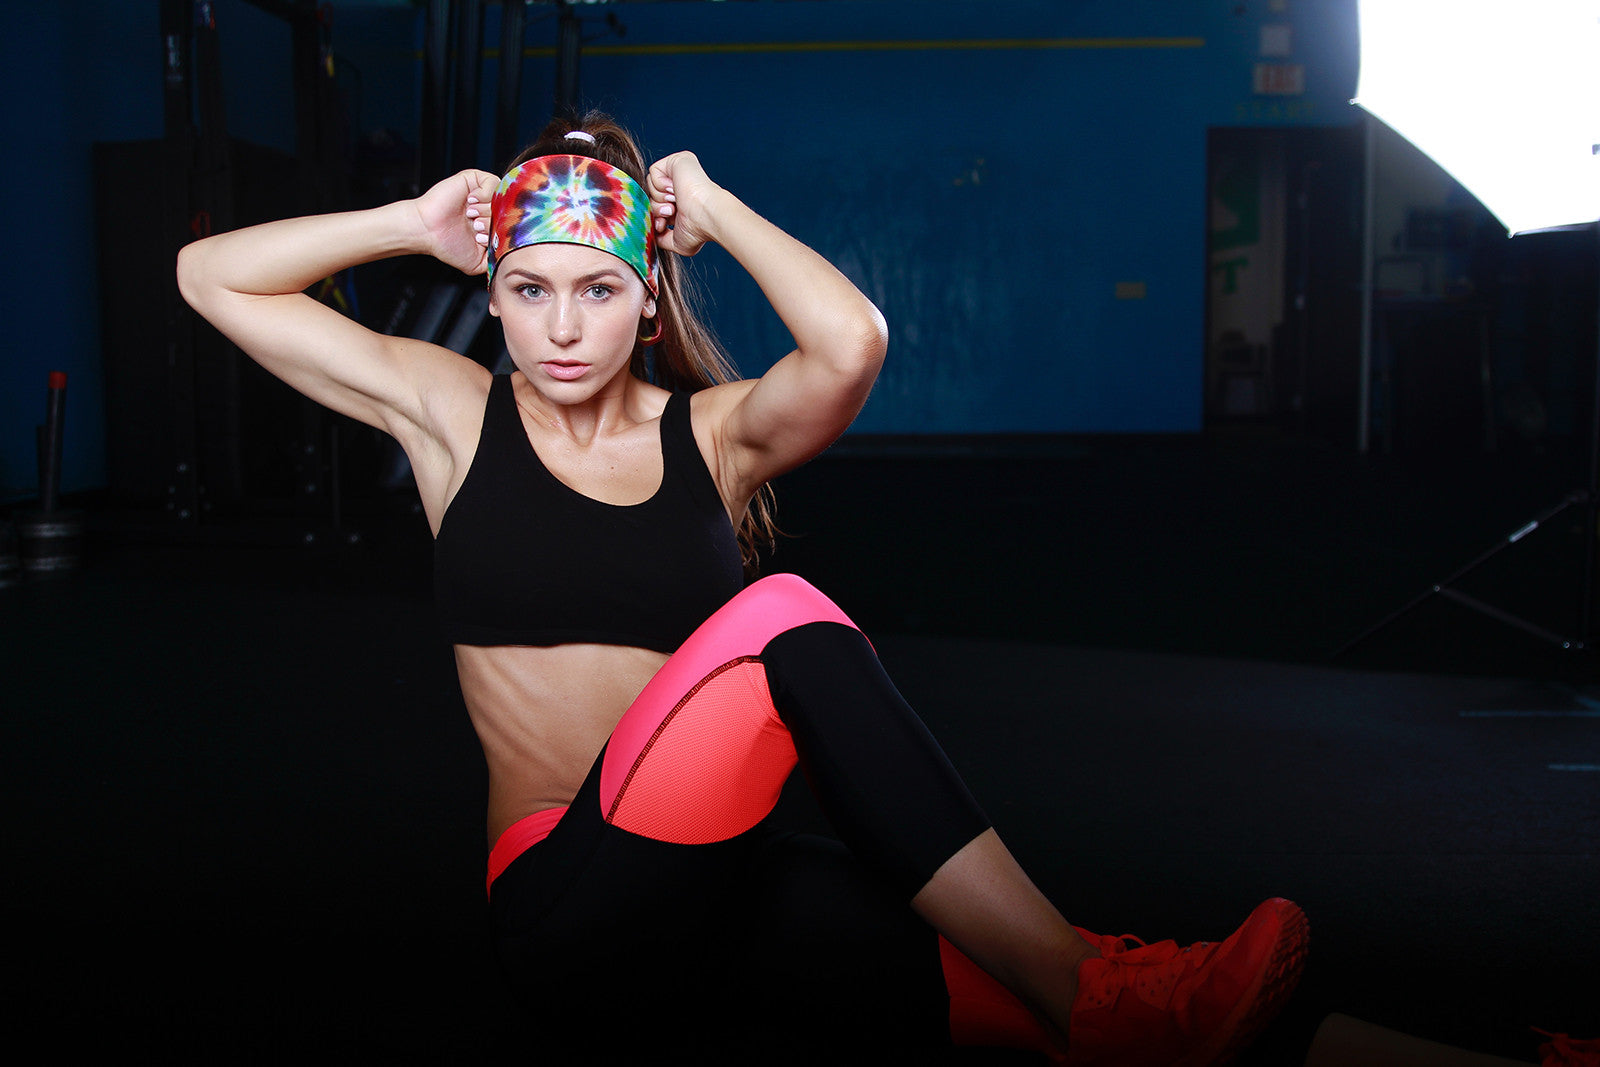 Gymwrap sweat headbands